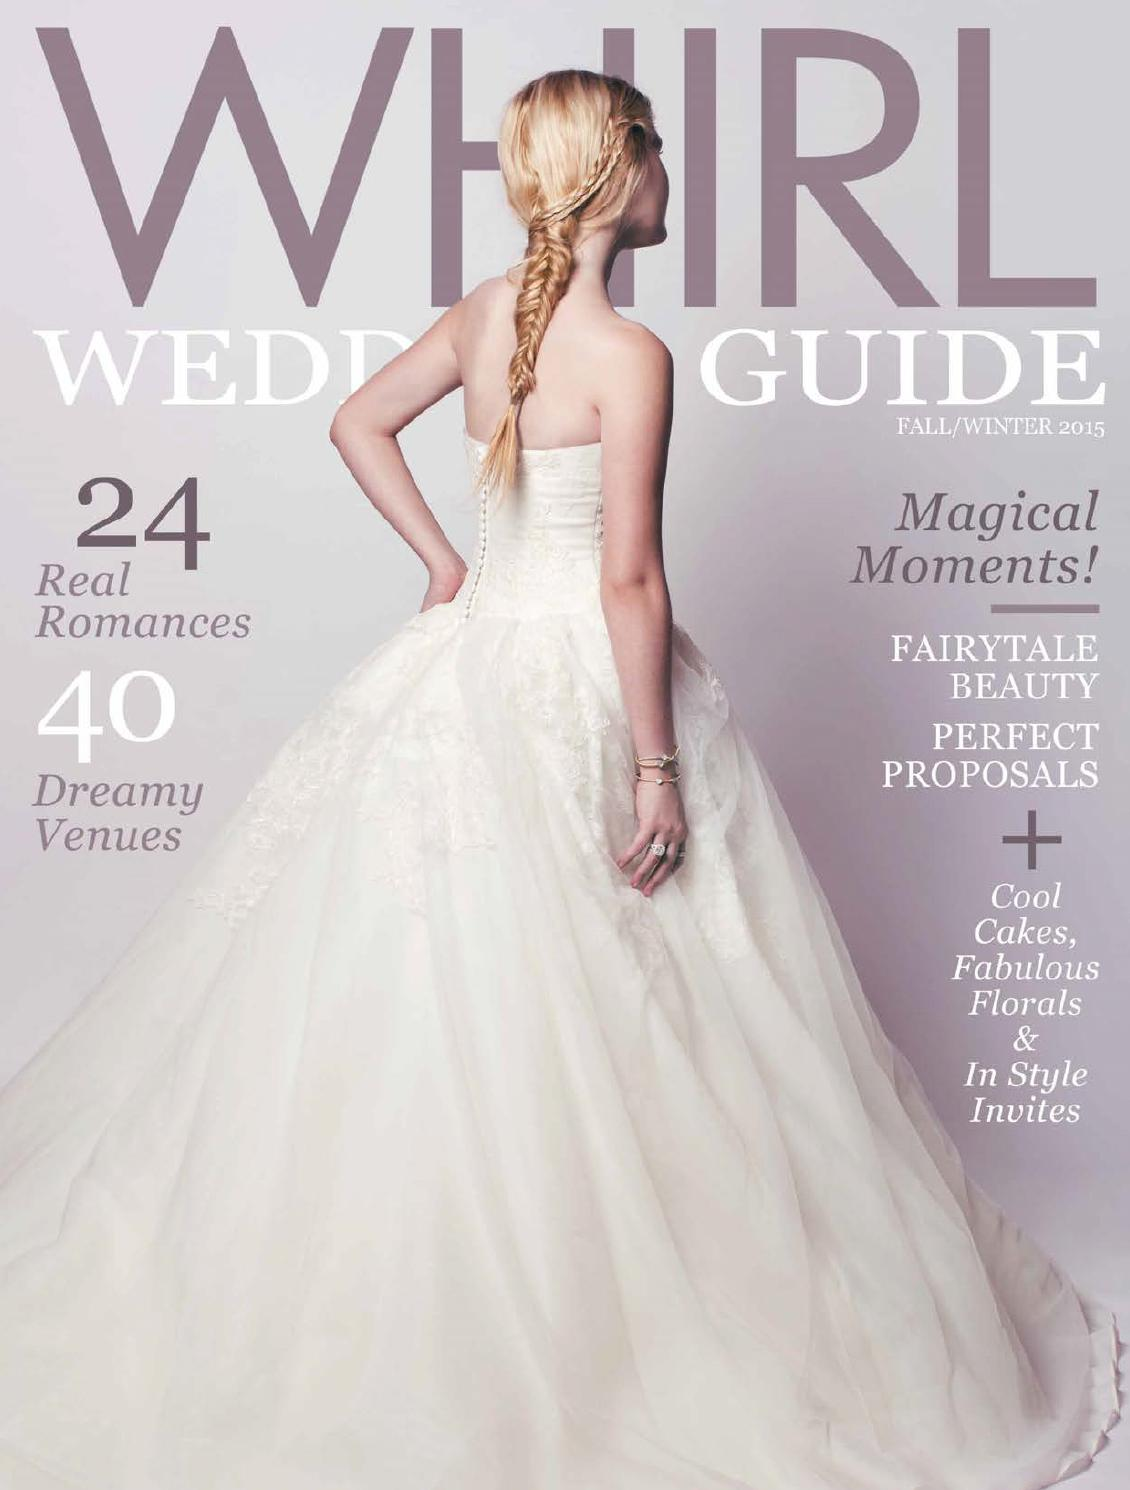 WHIRL Wedding Guide: Fall/Winter 2015 by WHIRL Publishing - issuu